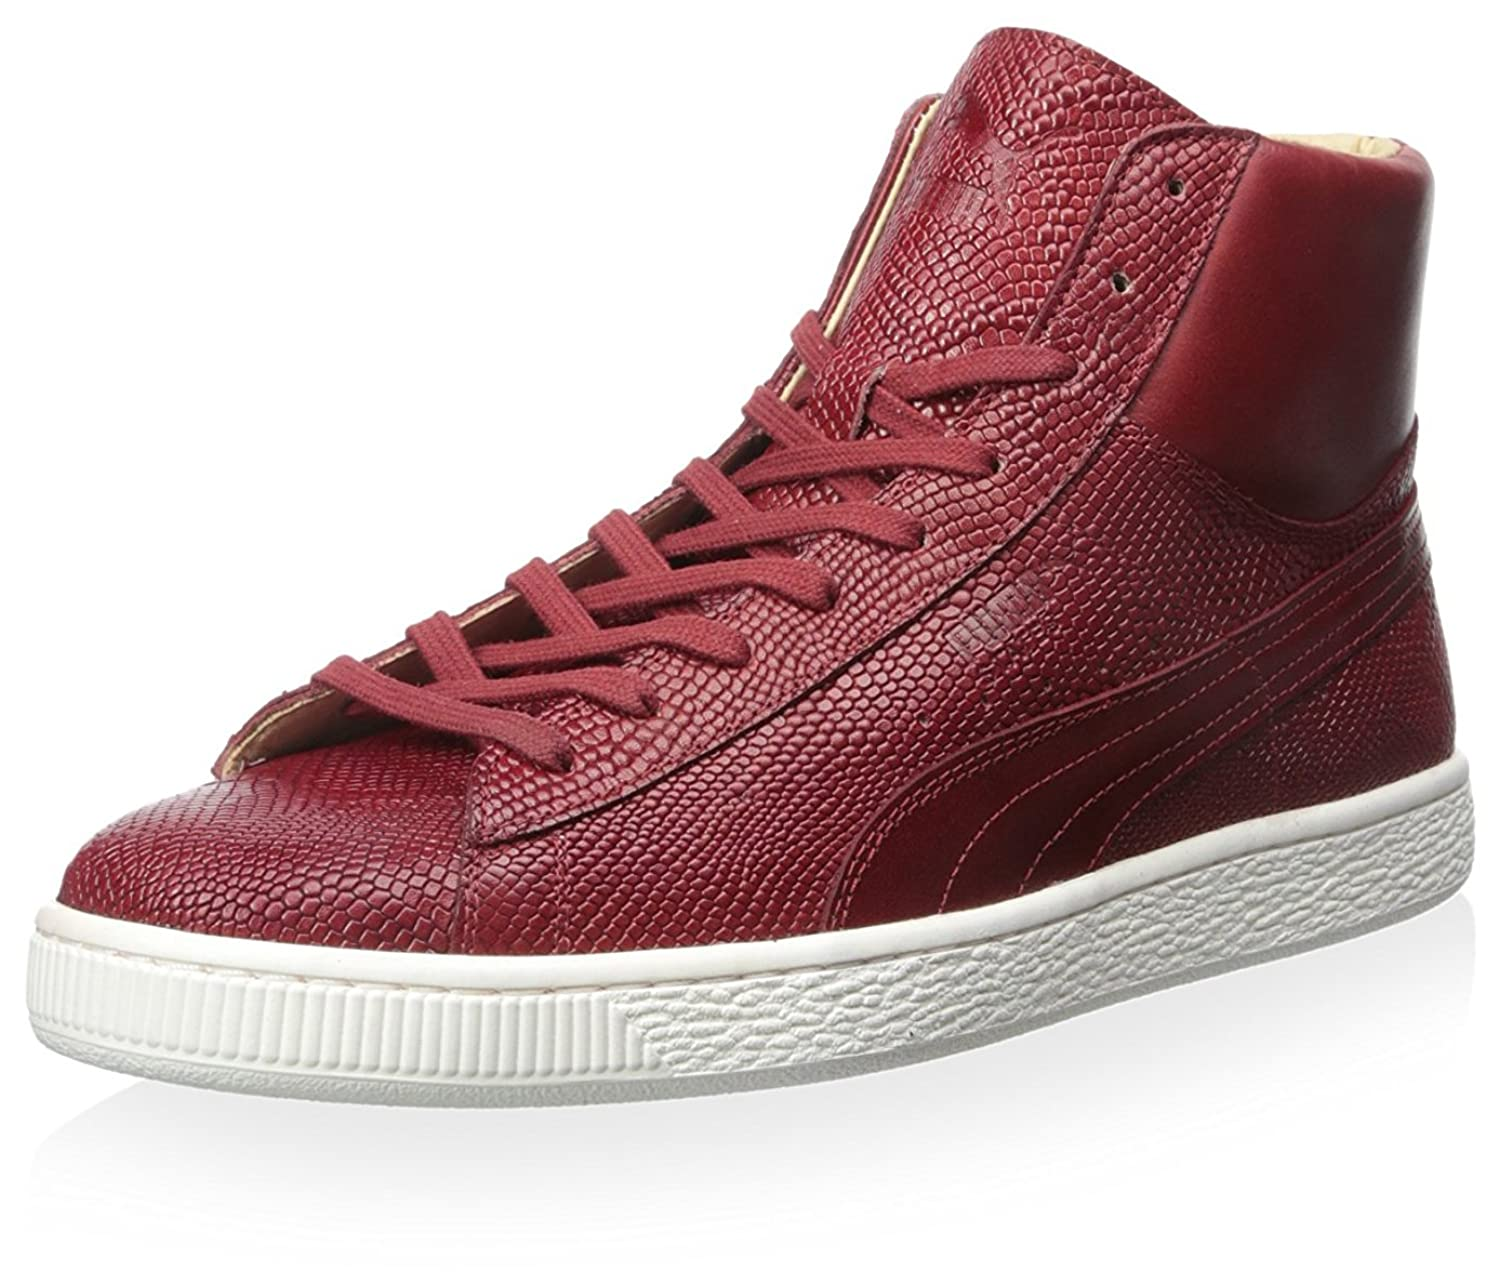 Amazon.com | PUMA Men's States Mid Mii Hightop Sneaker, Sun/Dried  Tomato/WHI, 11 M US | Fashion Sneakers